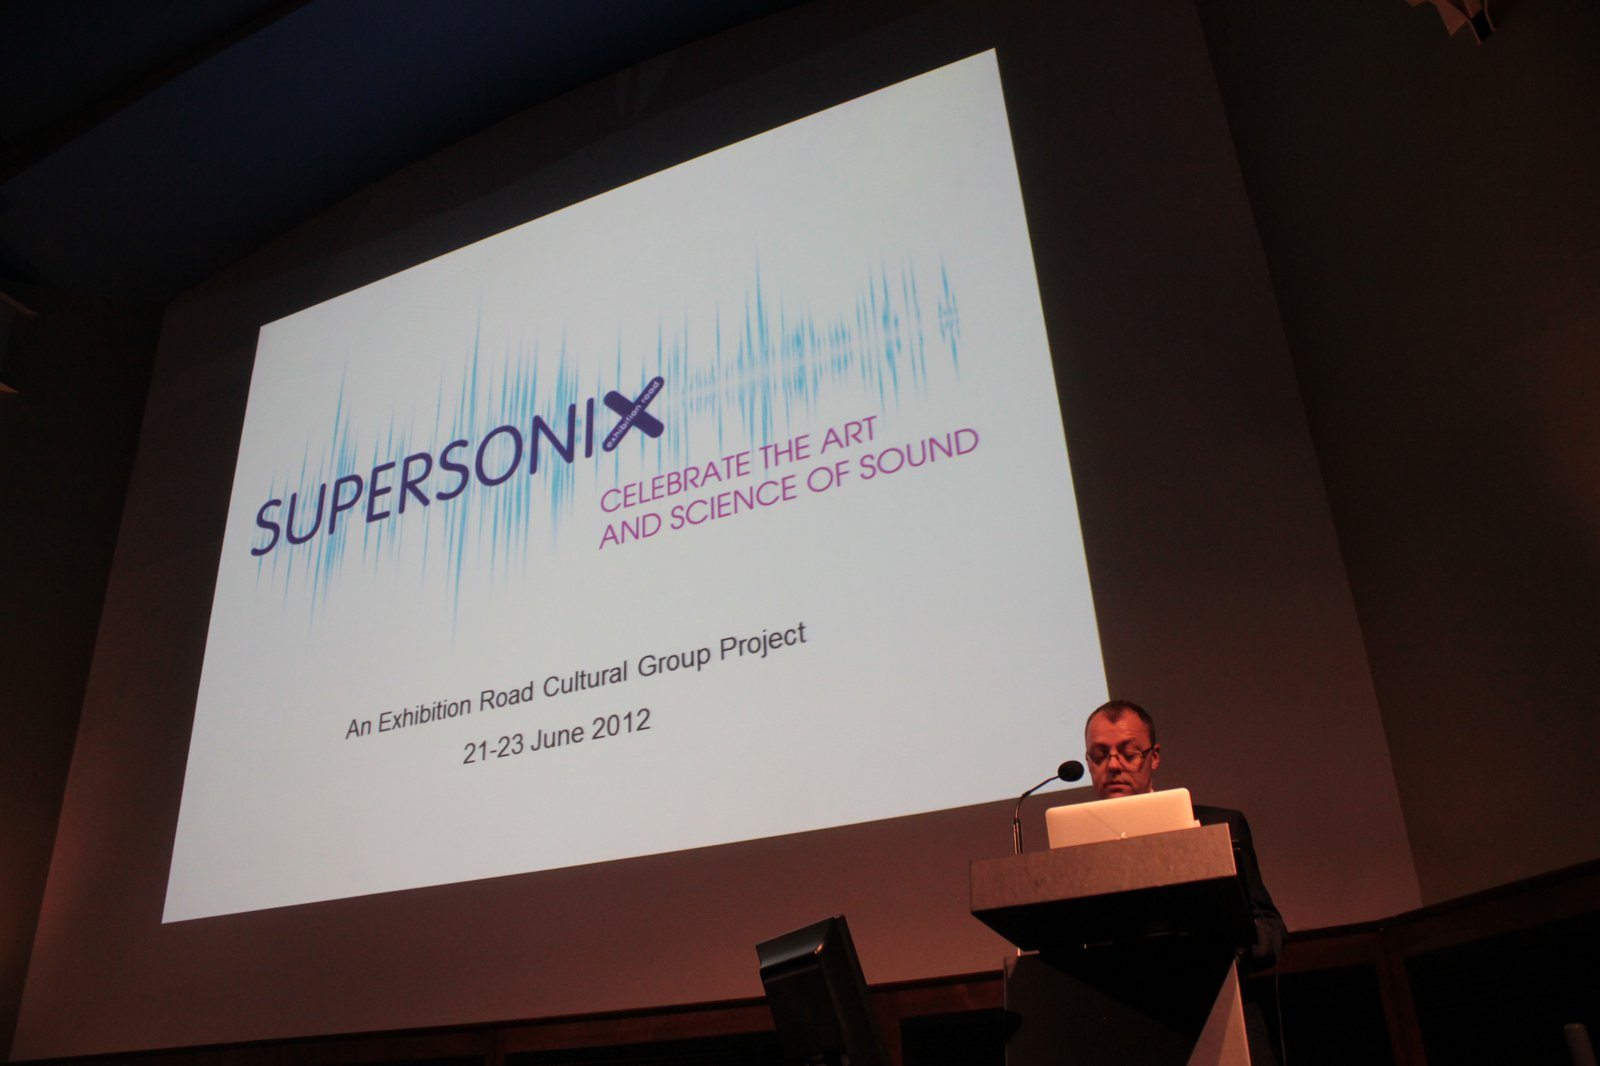 Supersonix 2012